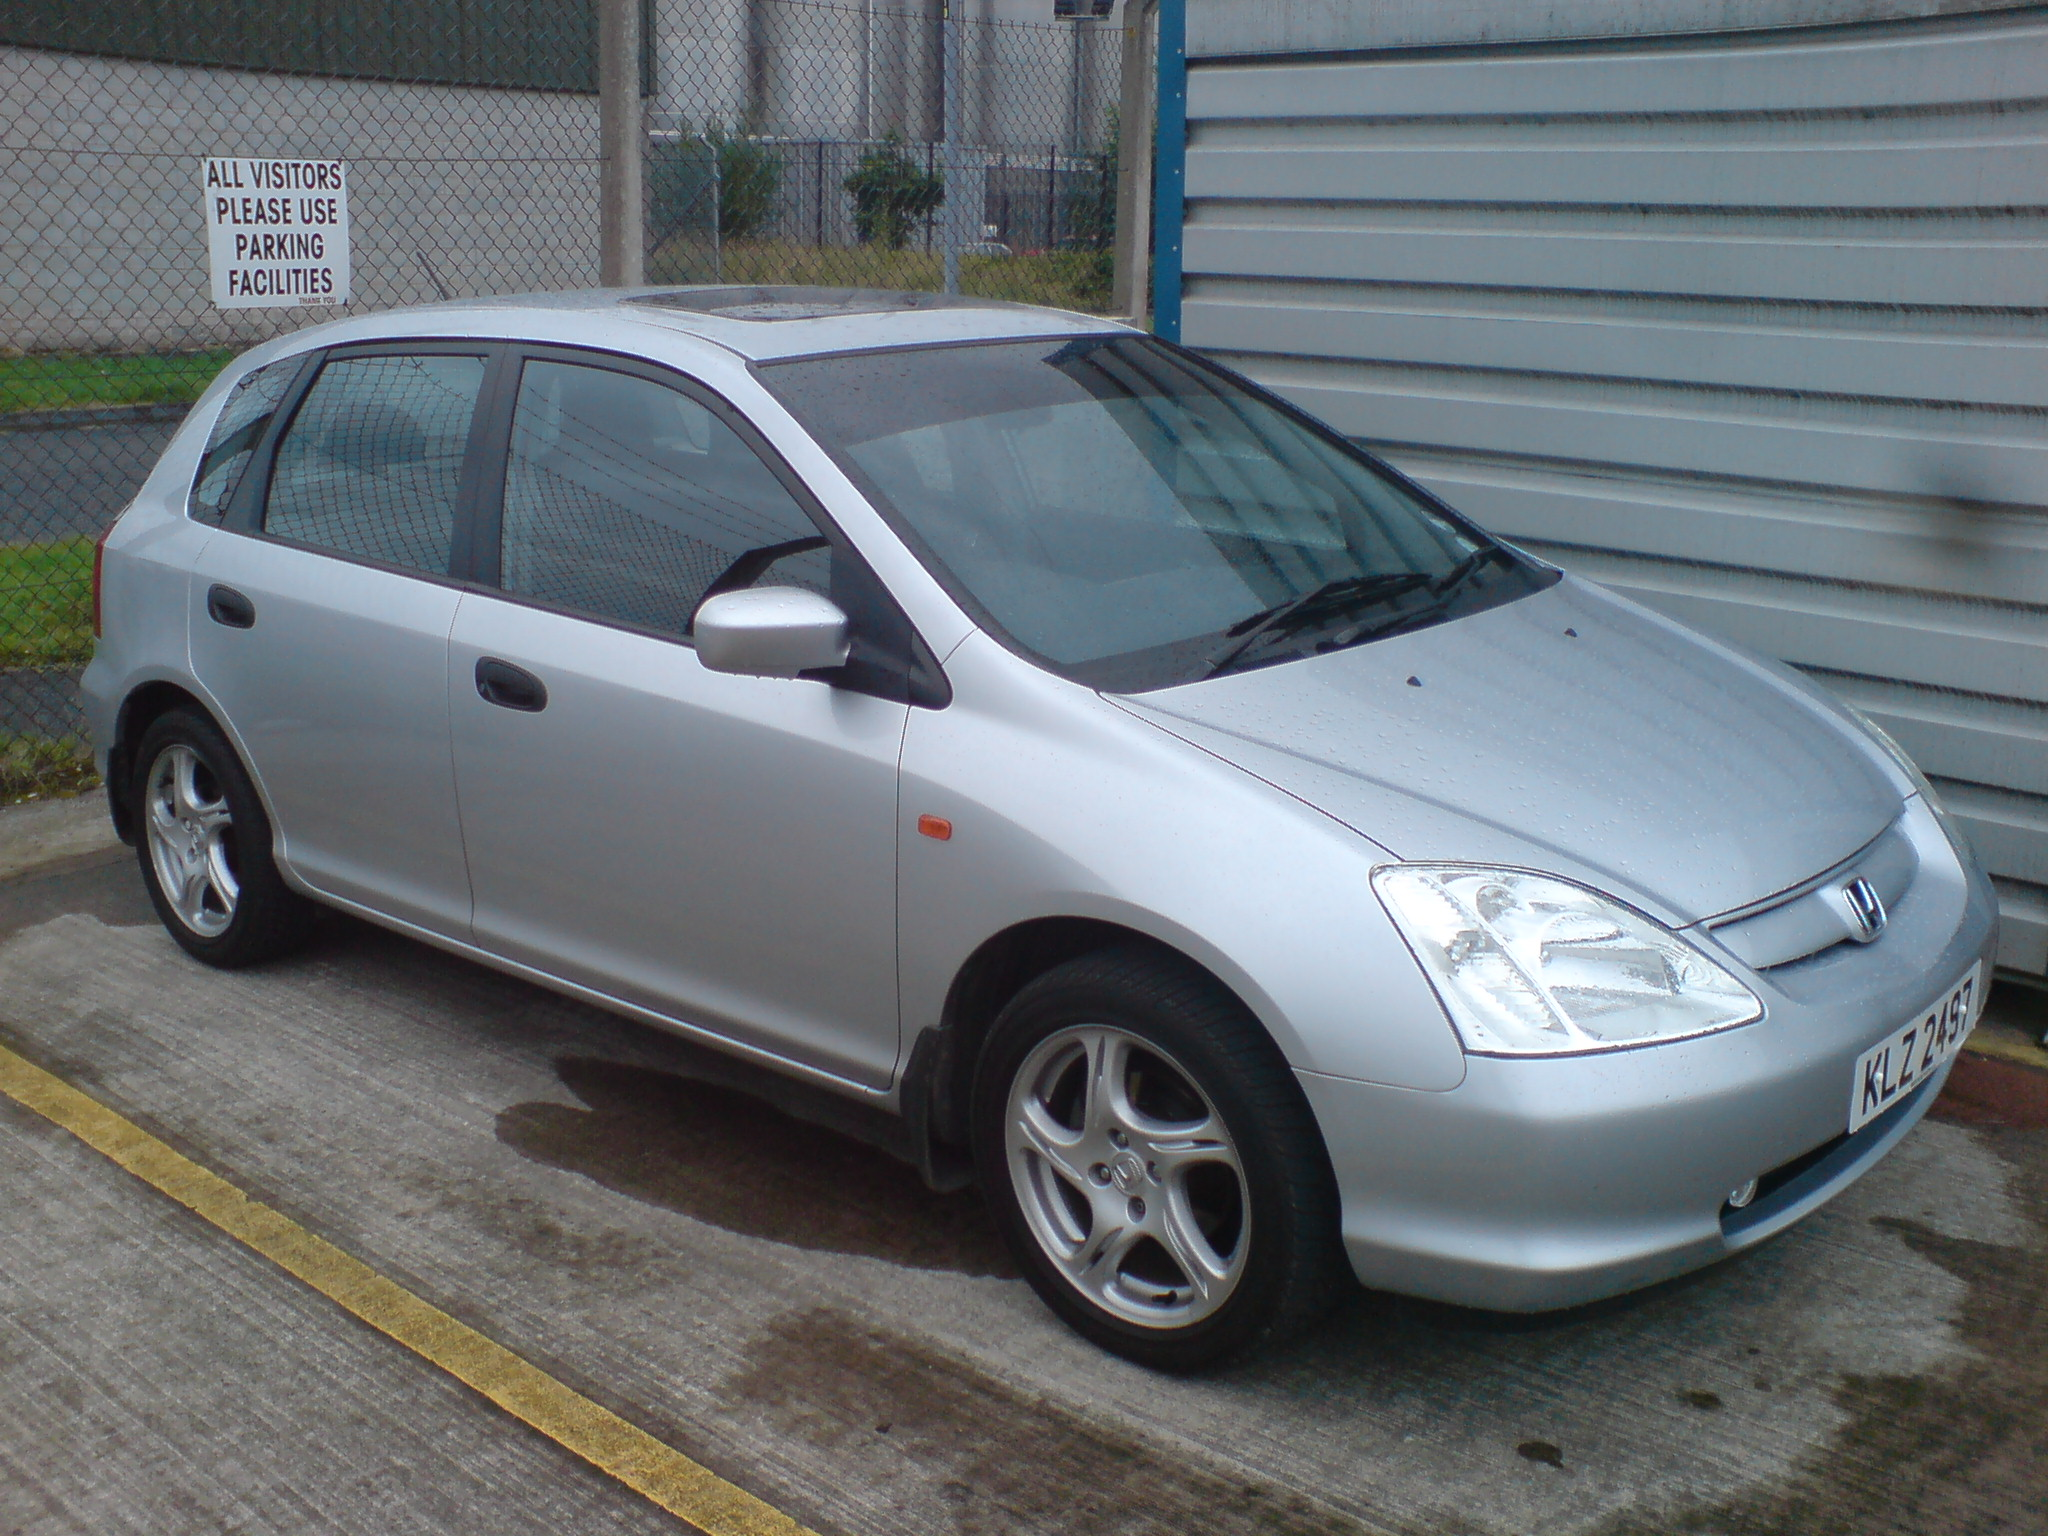 Charming File:Honda Civic 1600cc Vtec 2002 NI